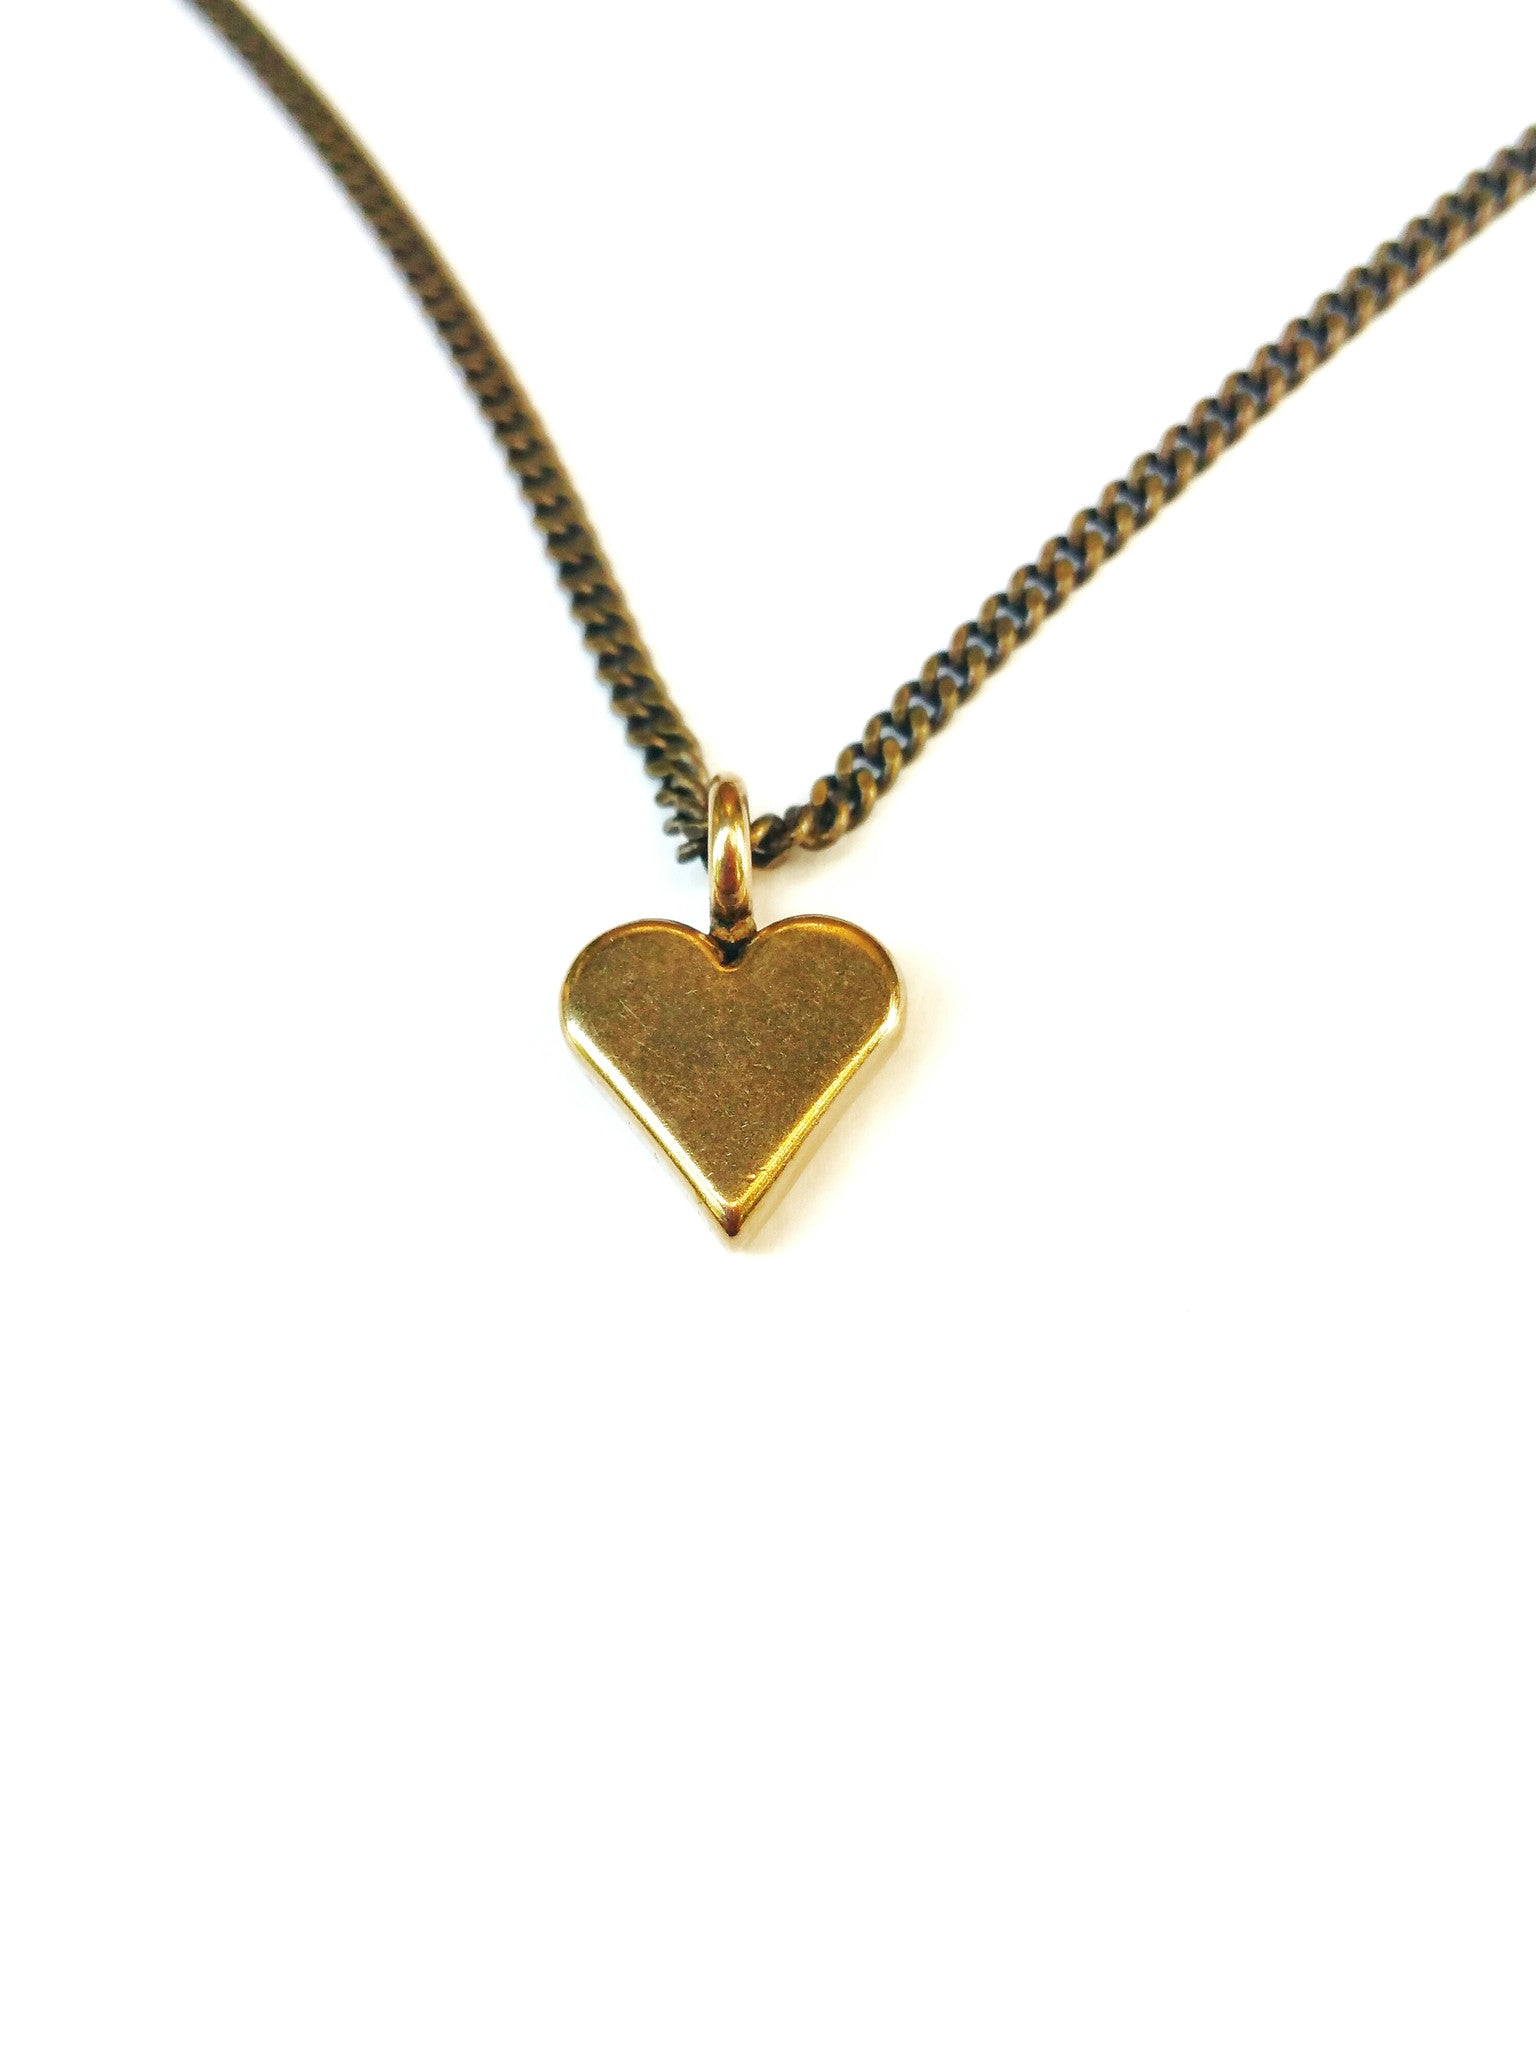 mamaloves heartmininecklacehover mini necklace heart charm